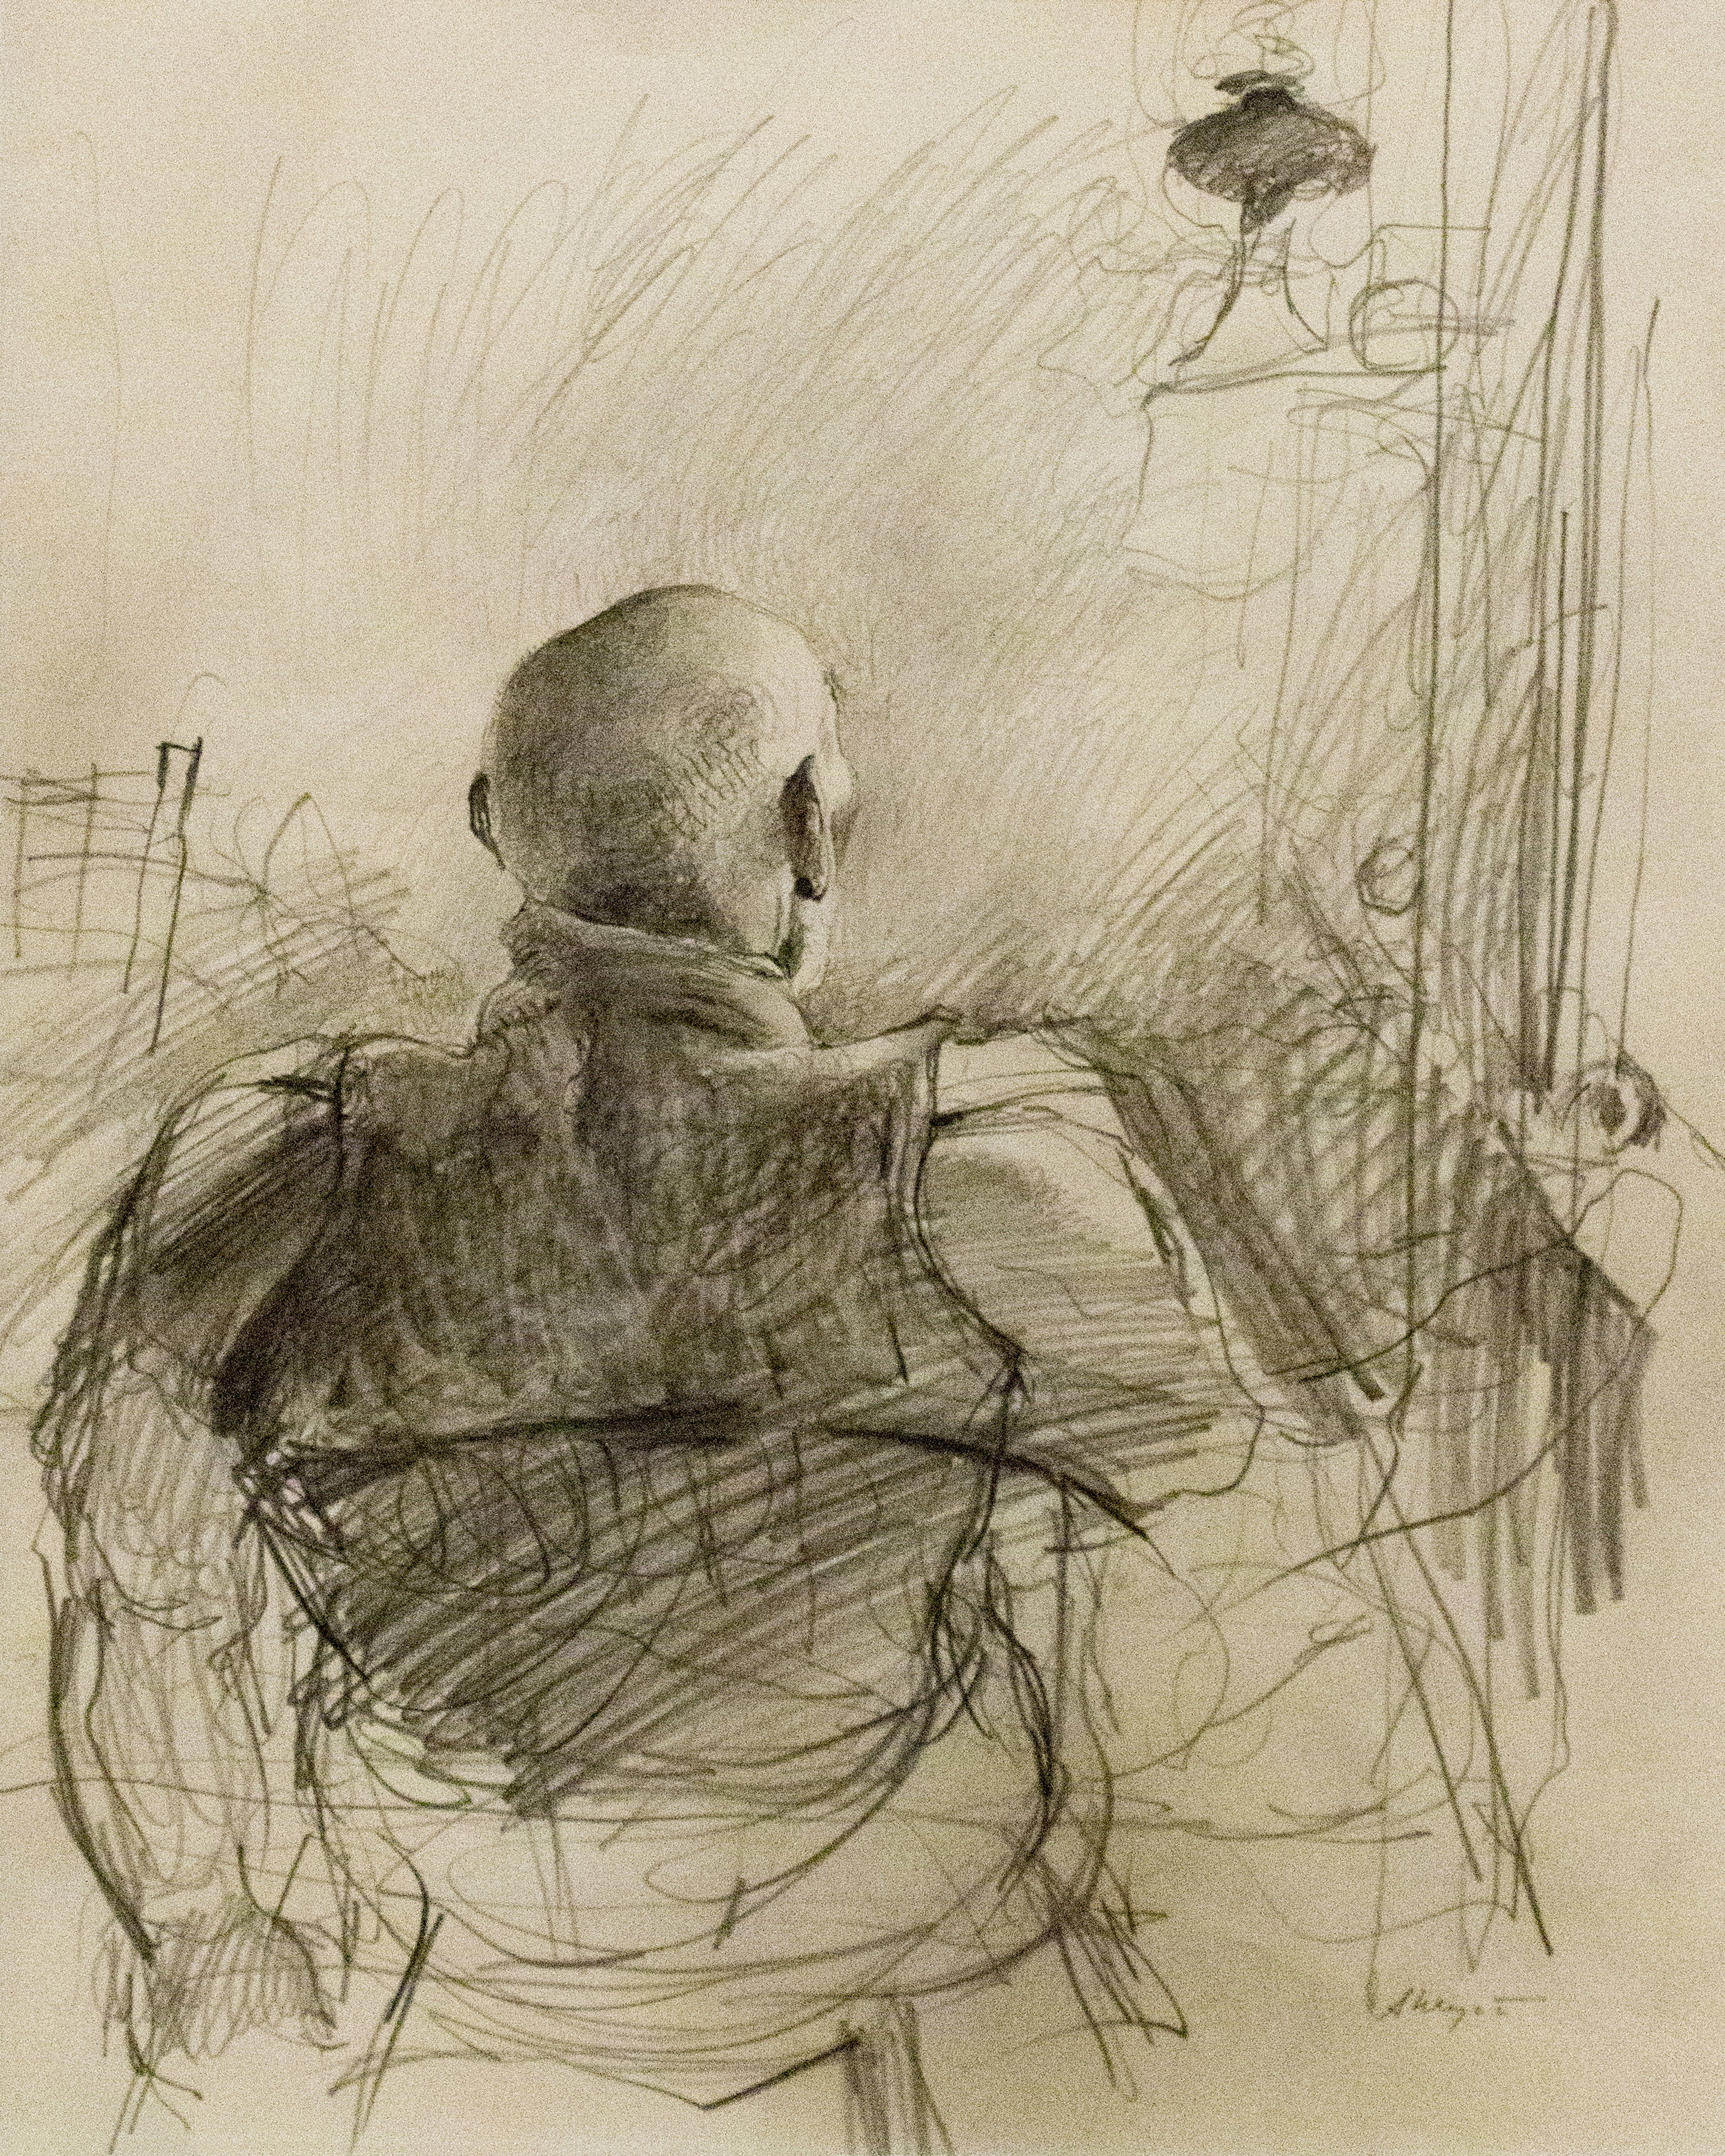 Sketch, Pencil on paper. Andrew Wyeth. The Brandywine River Museum of Art. Image courtesy of author.